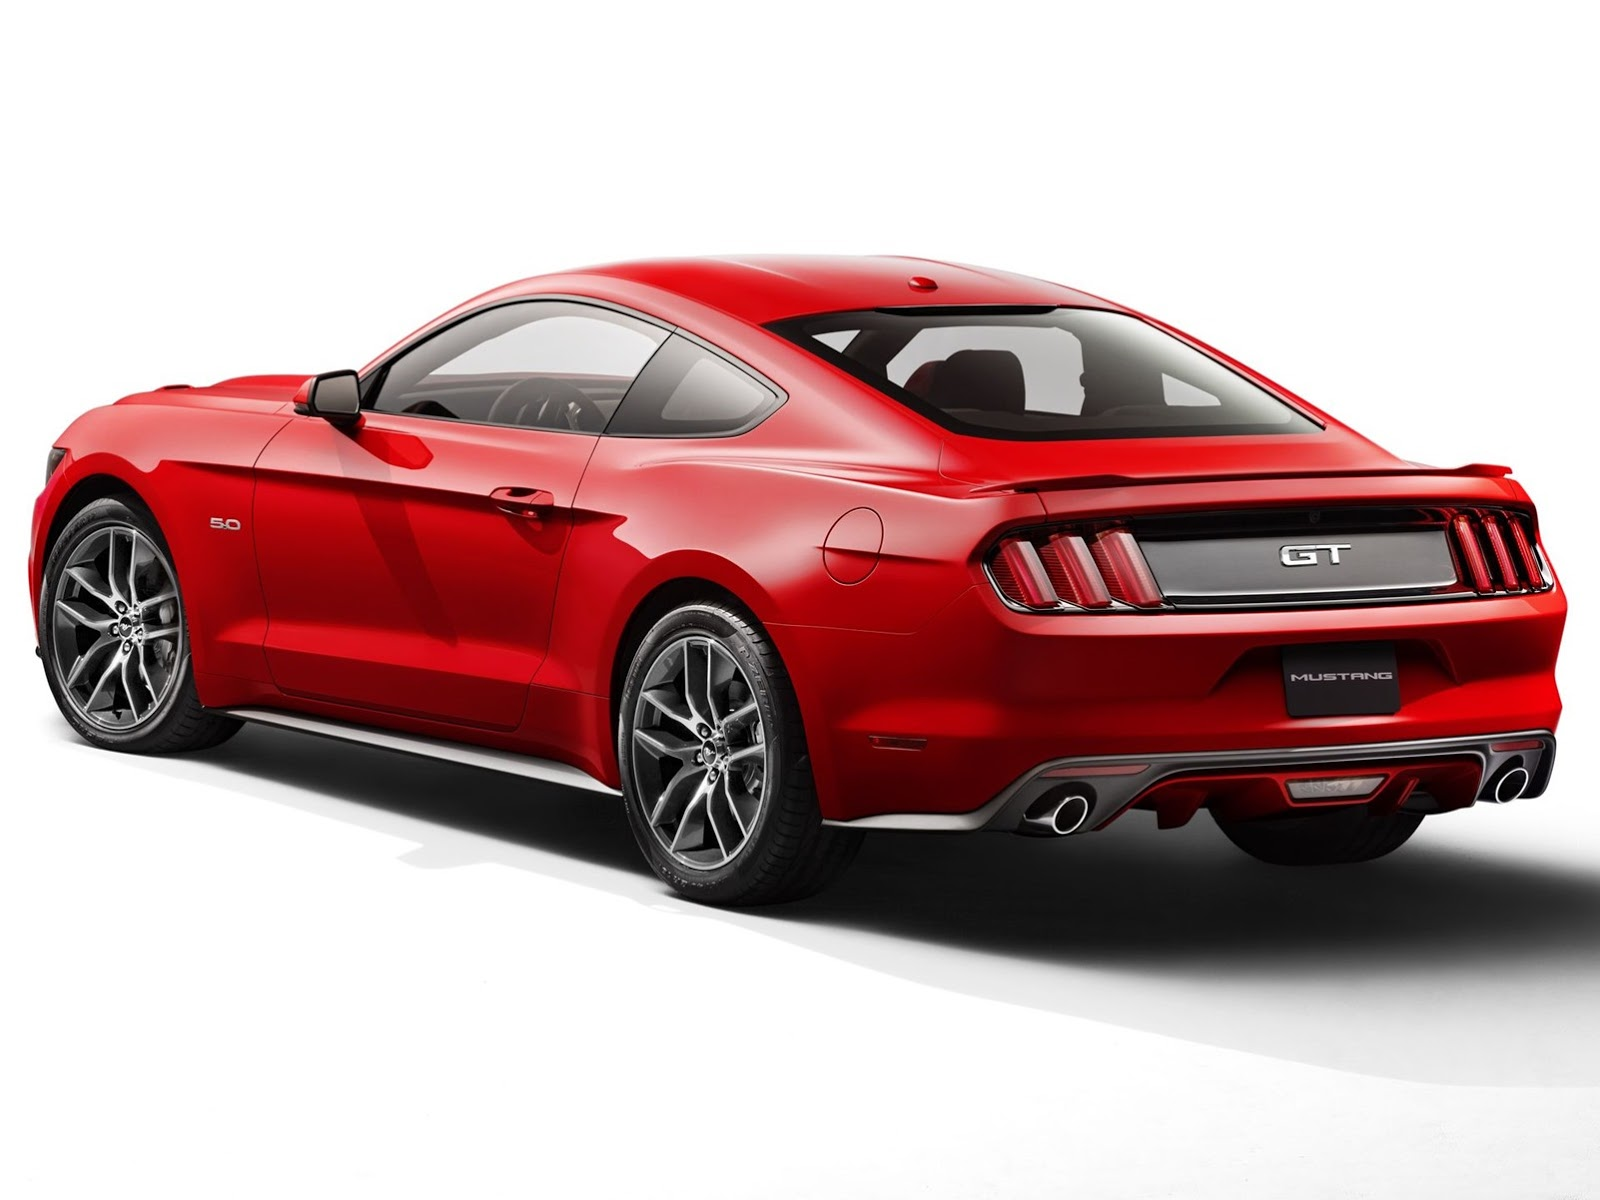 2014 - [Ford] Mustang VII - Page 6 2015-Ford-Mustang-Photos-62%25255B2%25255D